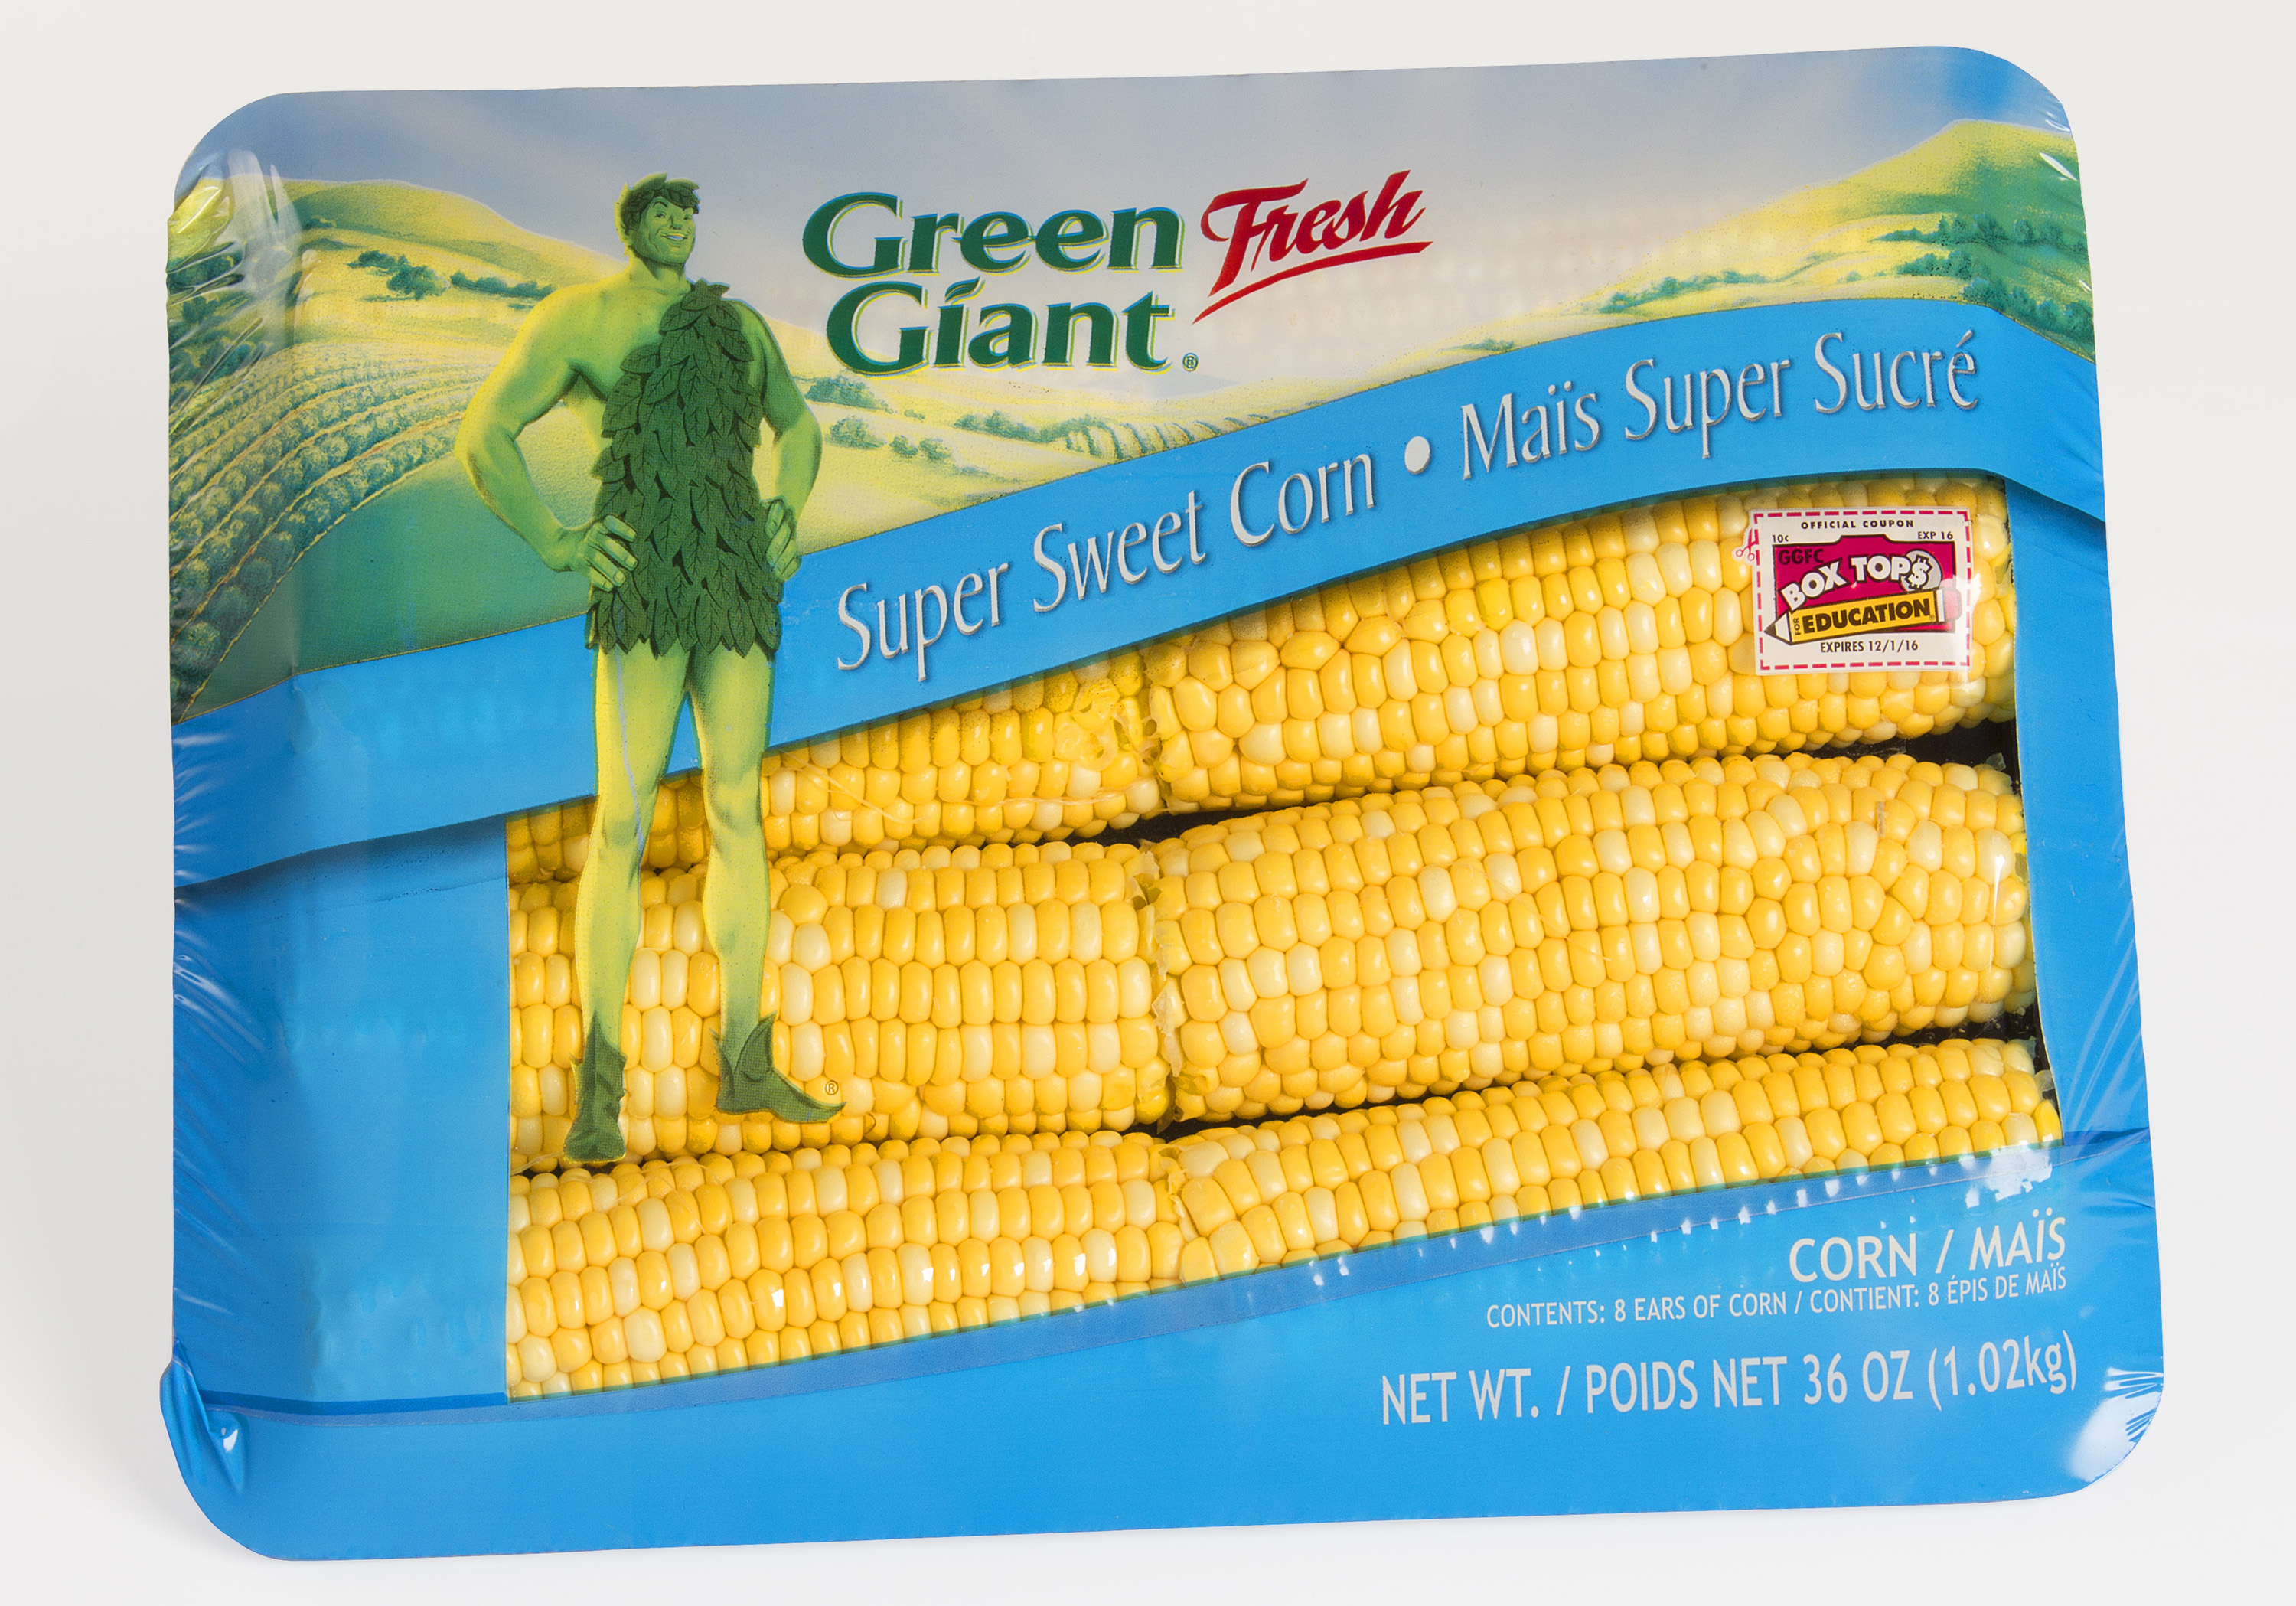 Pioneer Growers Launches Green Giant Sweet Corn Products